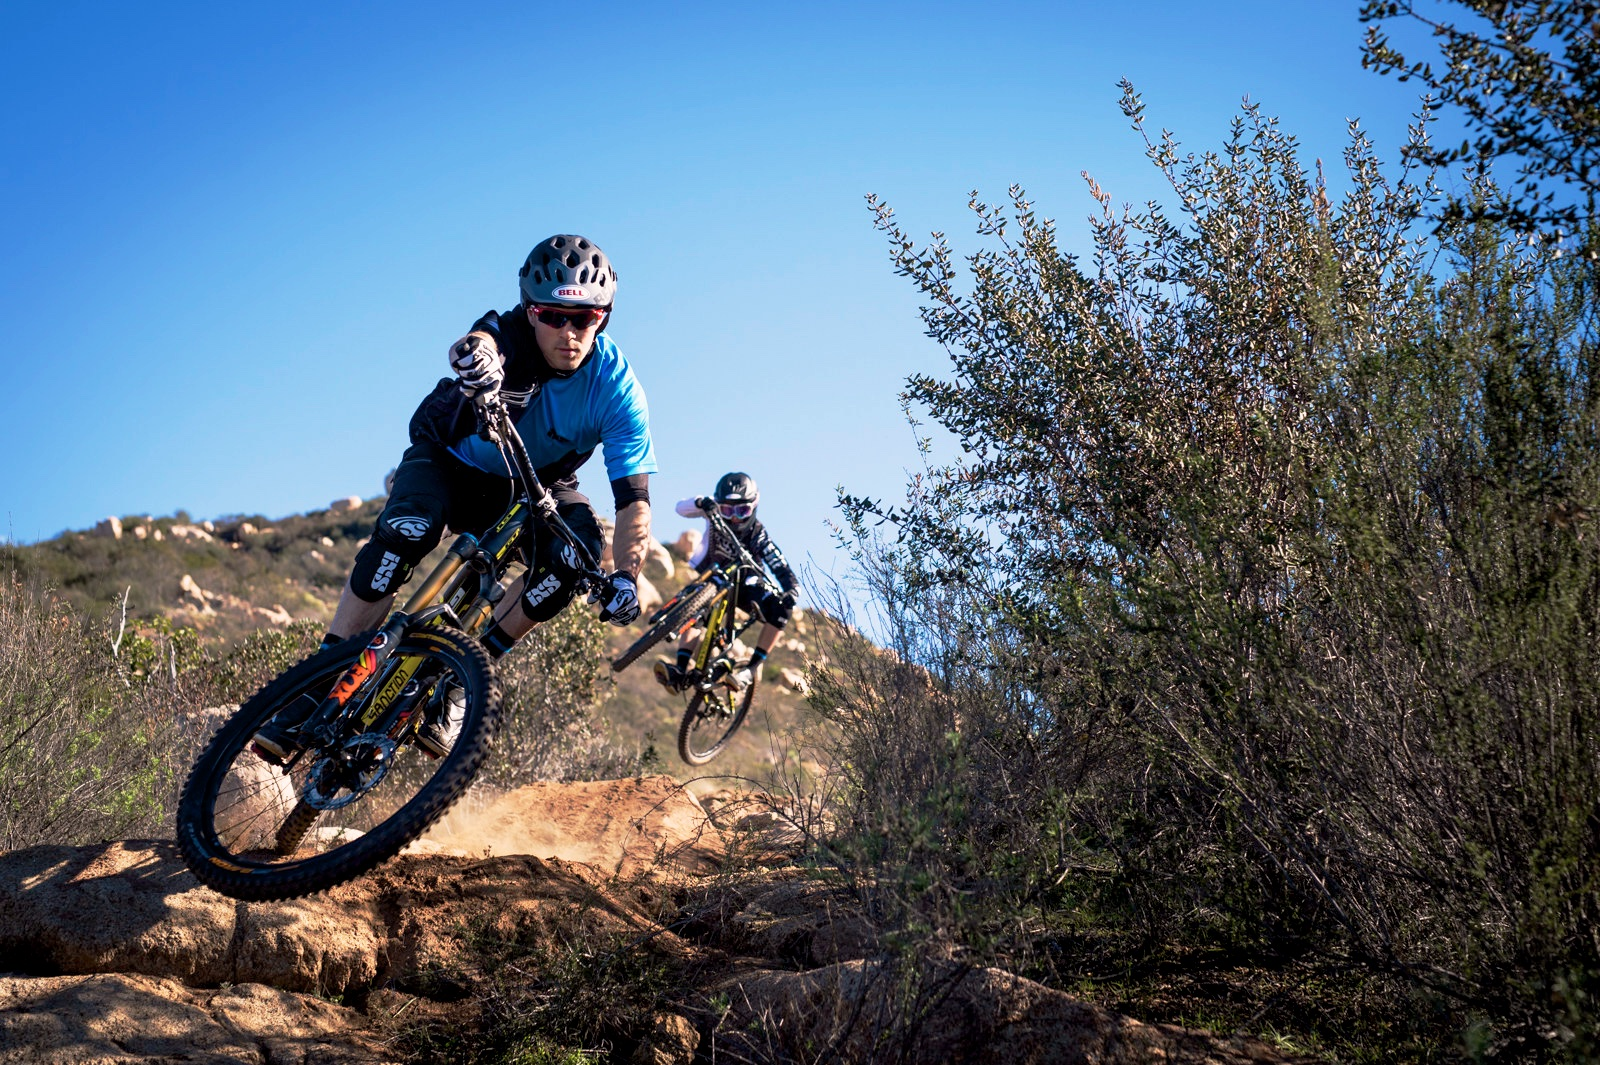 """554747beb37 Dan Atherton said """"For me 2015 is going to be all about Enduro, all about  racing with Martin and putting together a set of top-class results."""